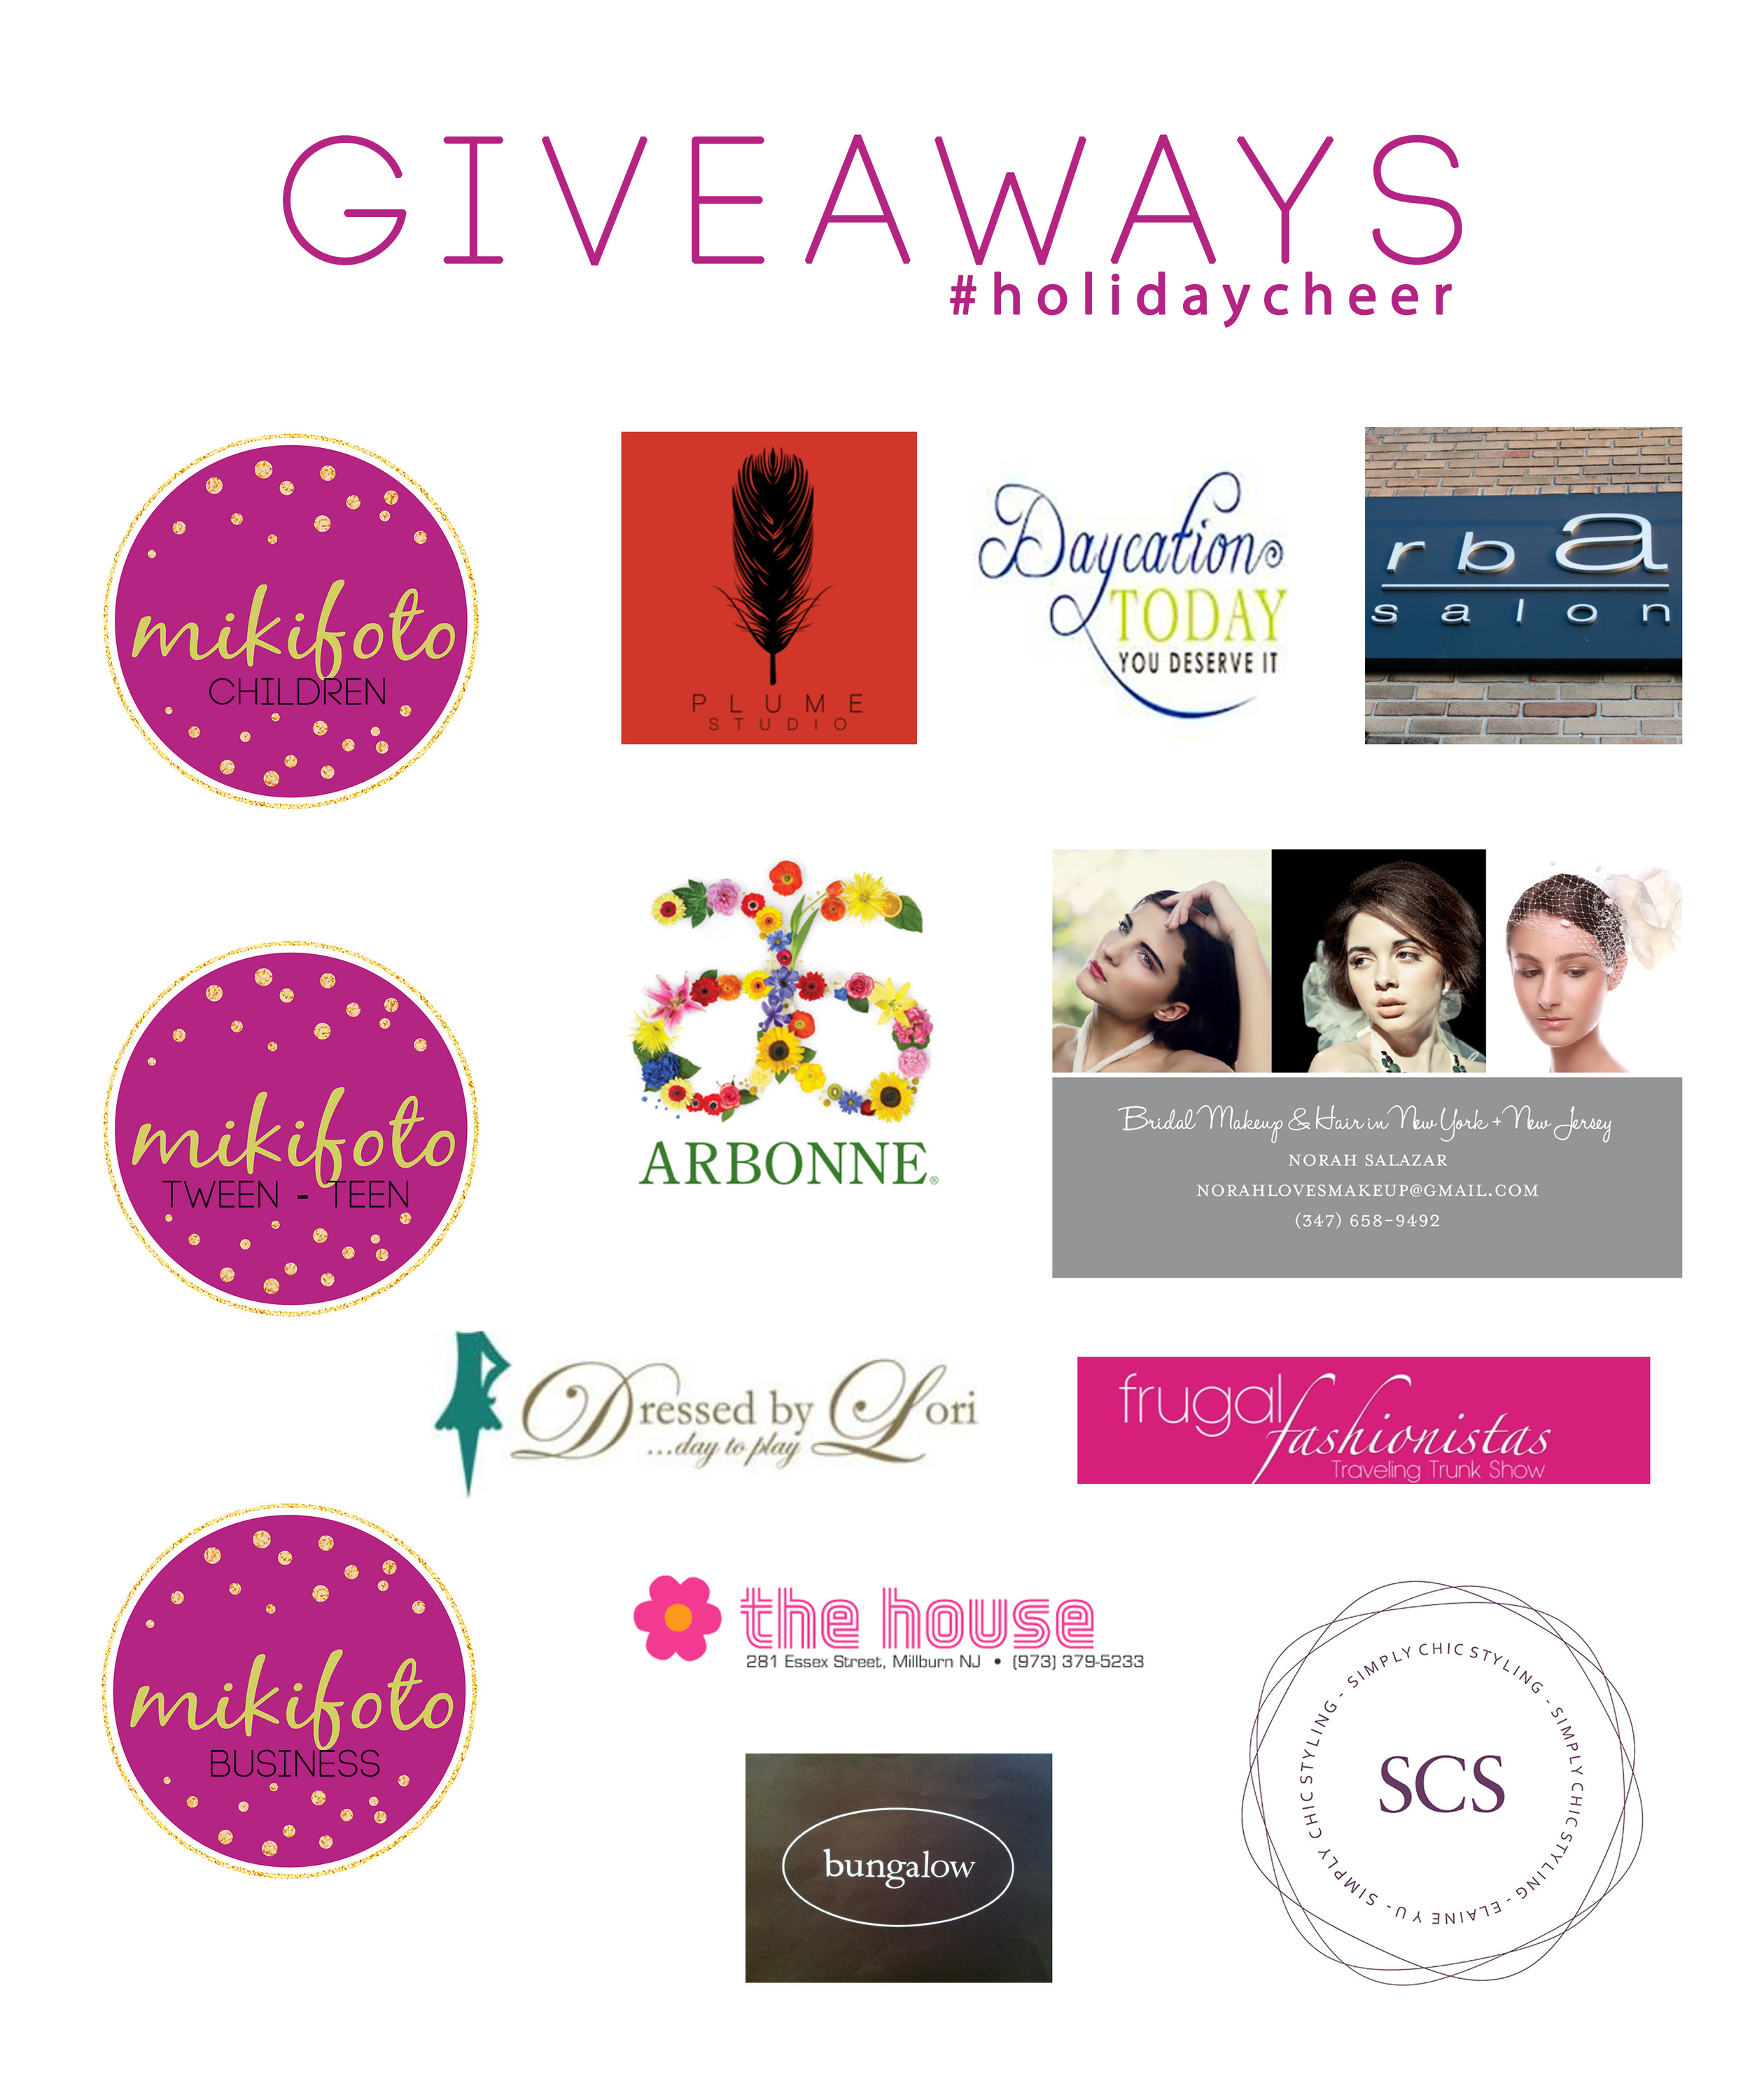 A big thank you for being part of this giveaway from mikifoto . Happy holidays!